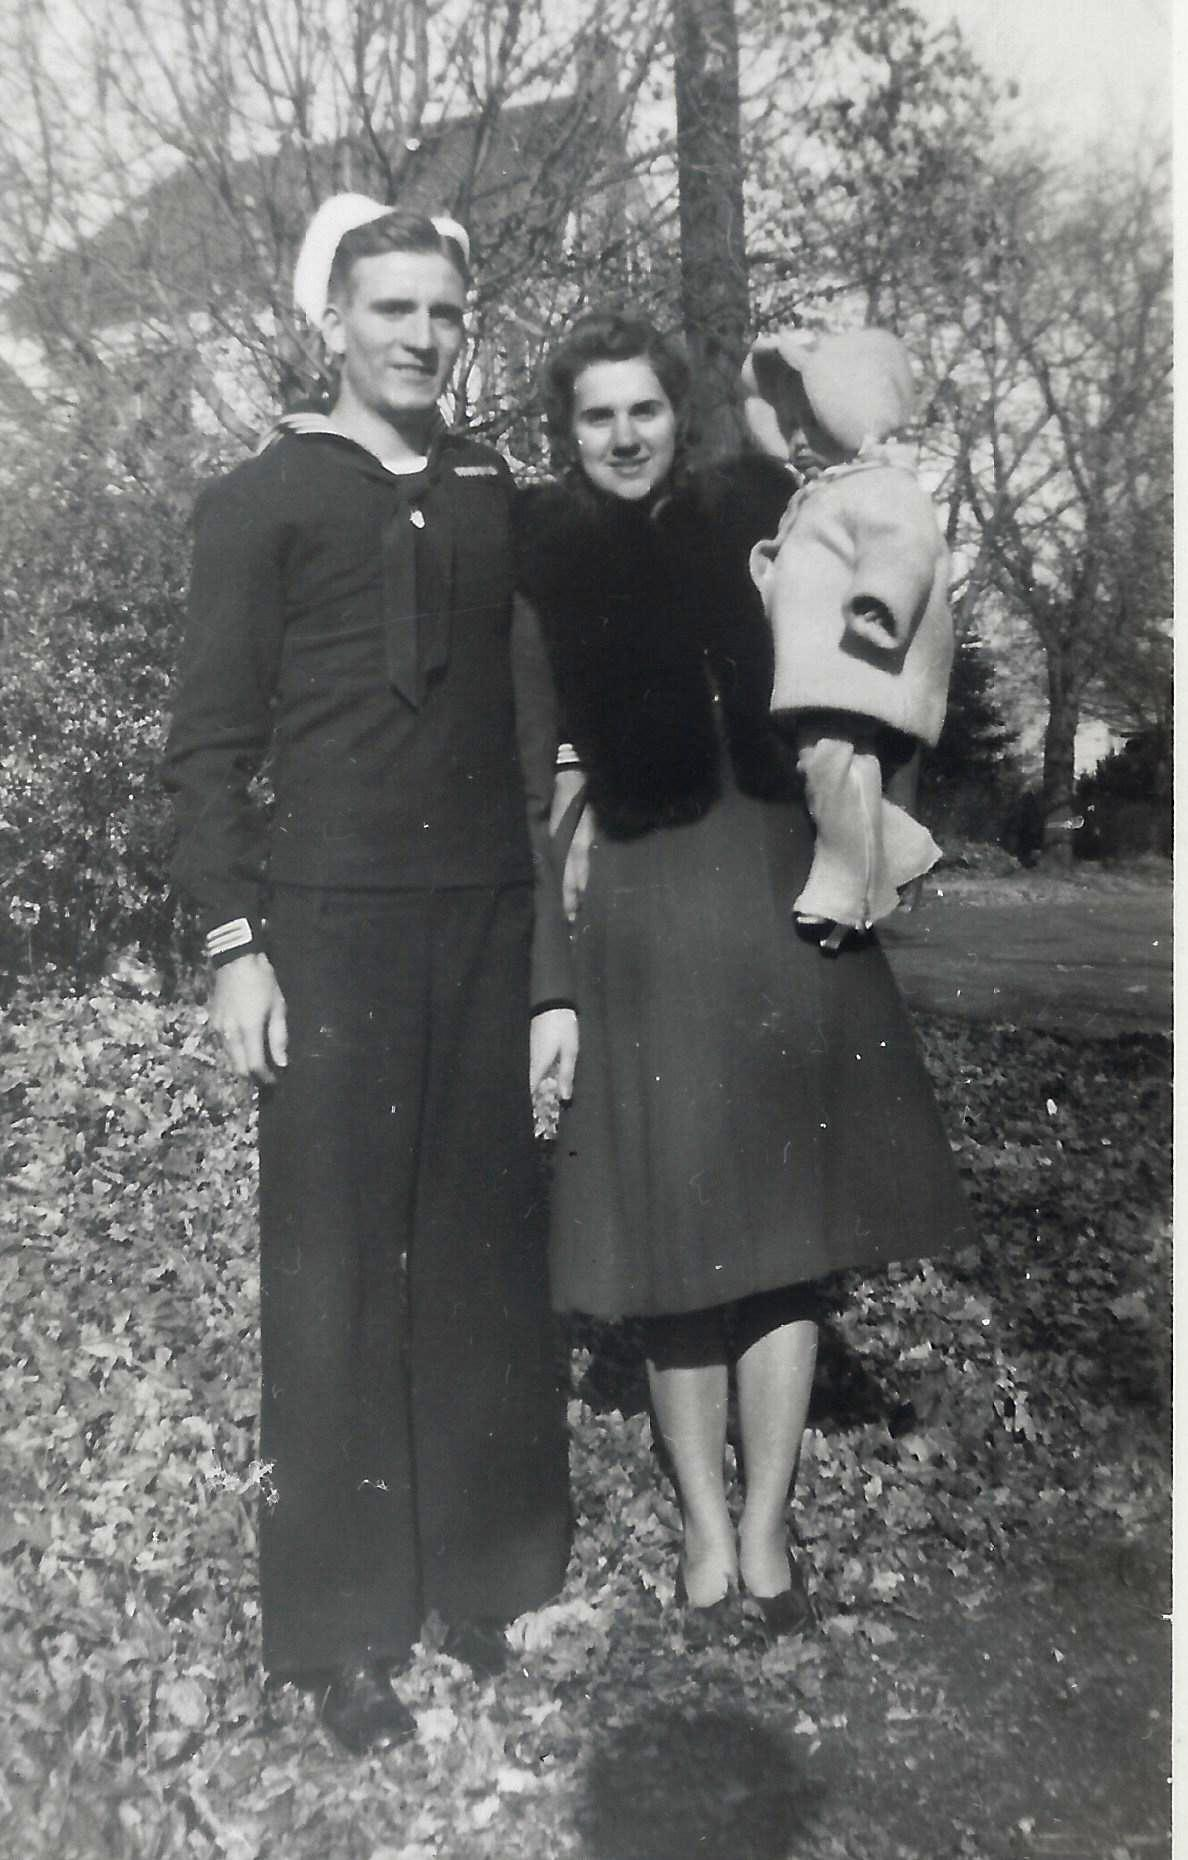 Emerson Luhman and spouse Mattie in 1944 with daughter Joyce—Matthew Stone's mother. (credit: Mattie Hudock)